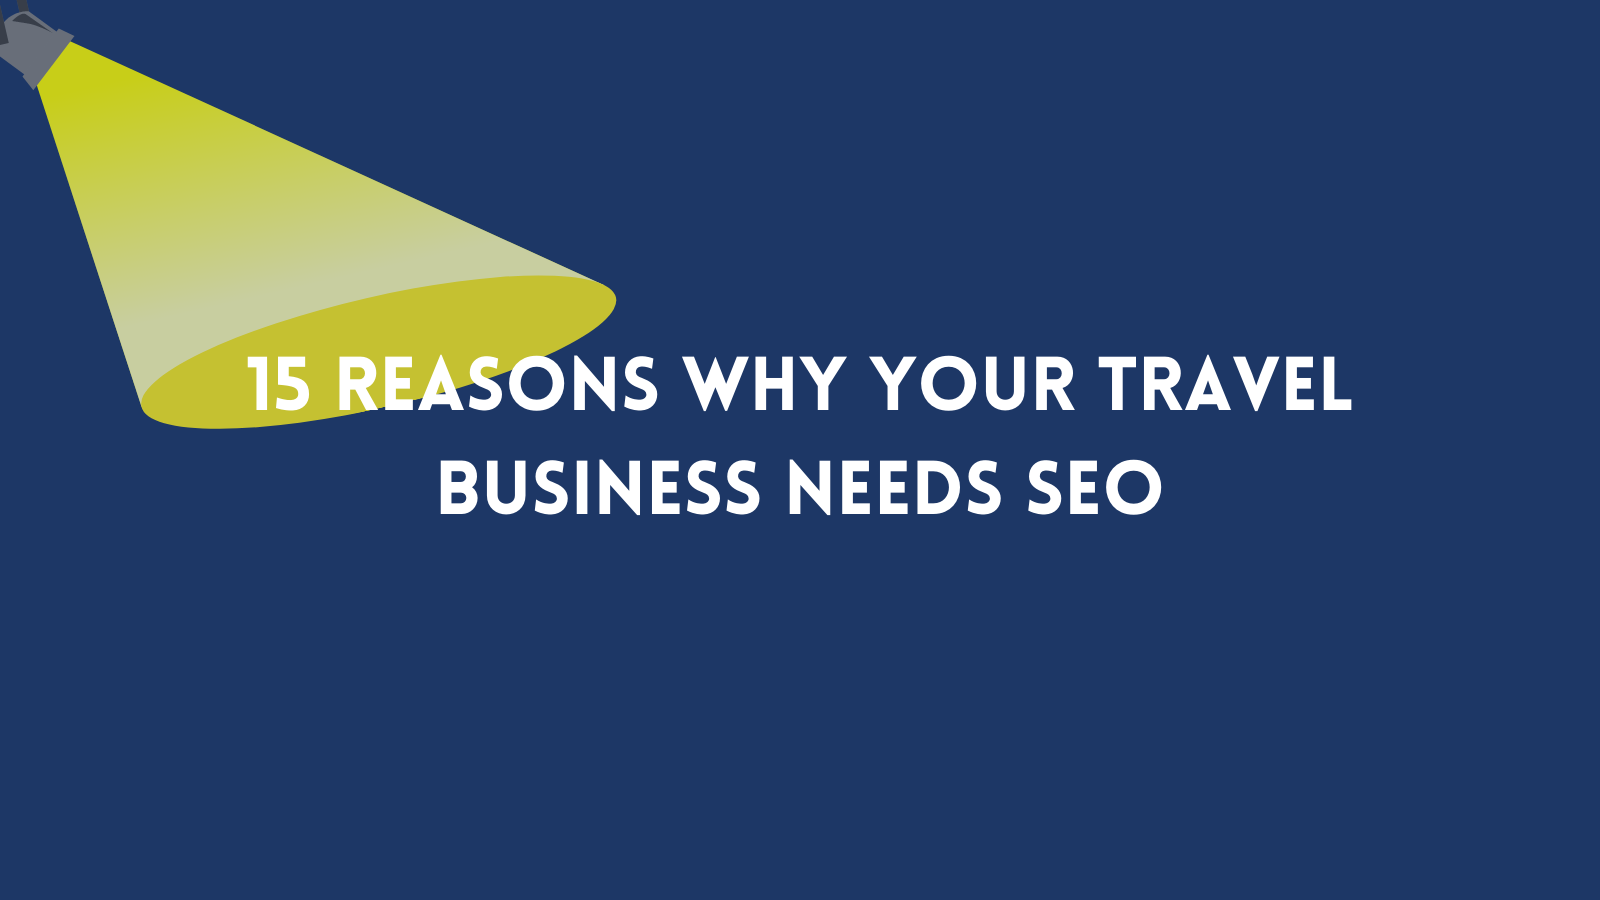 15 reasons why your travel business needs SEO